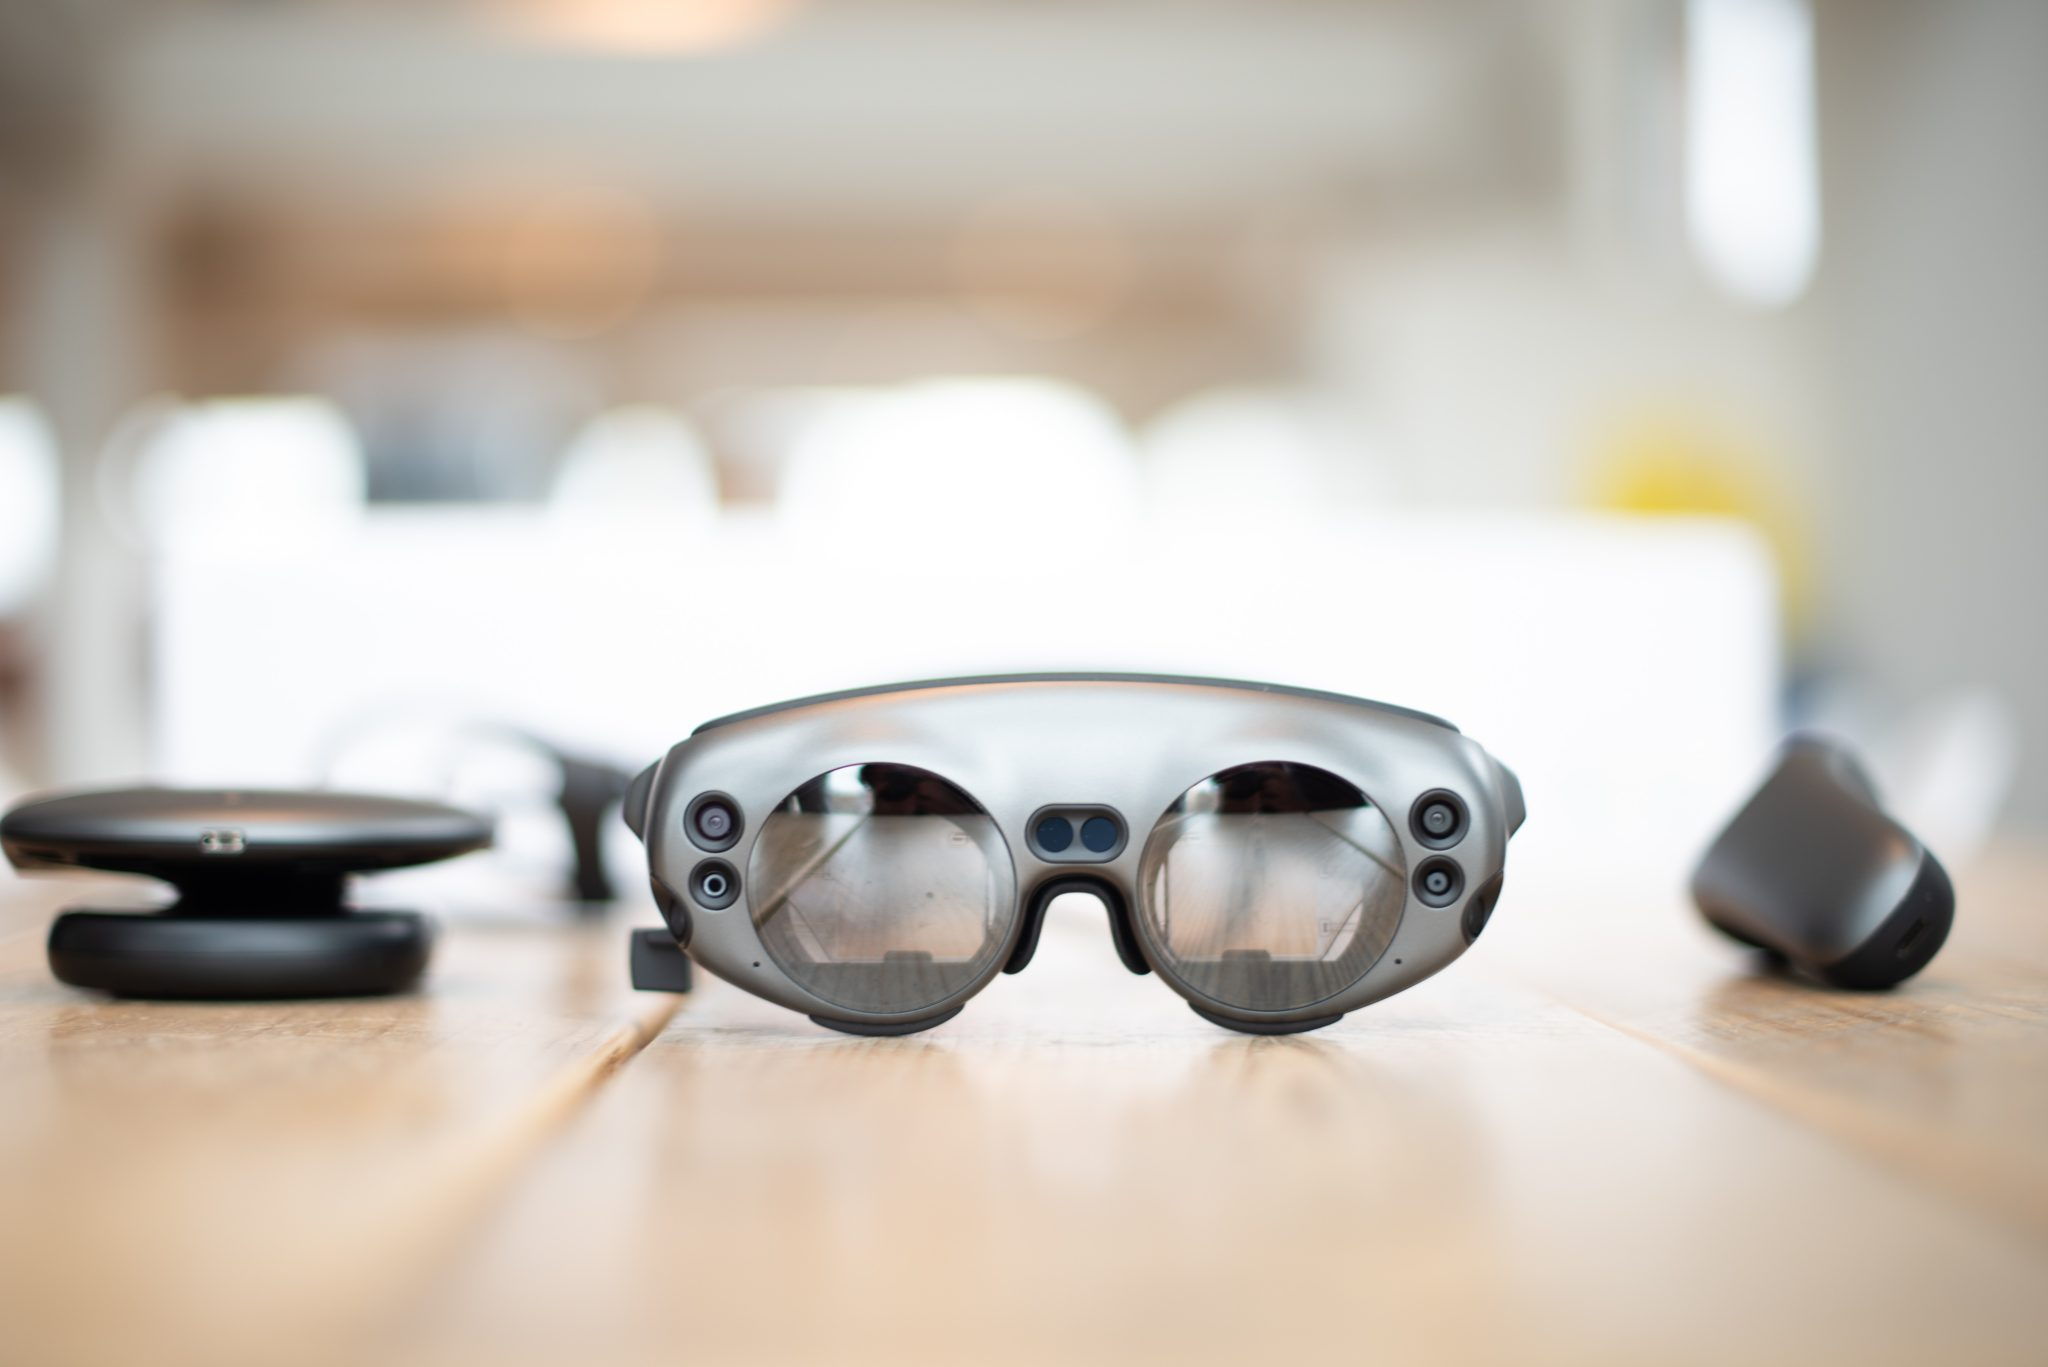 AR/VR events in 2019: A list